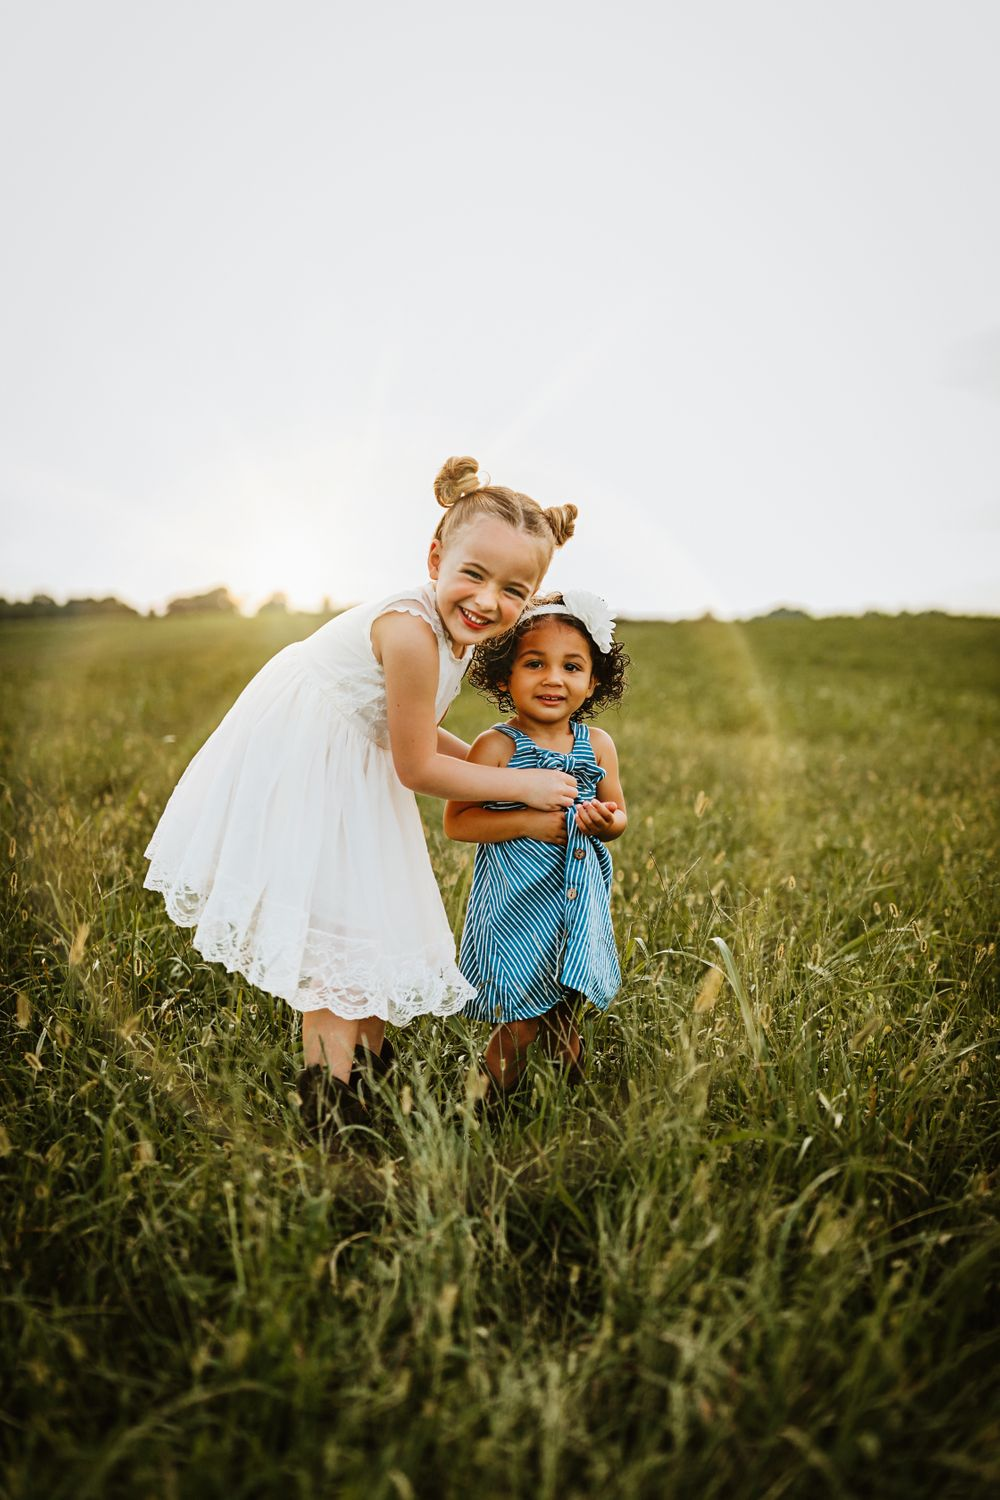 image by kylee swisher photography of sisters smiling in a field